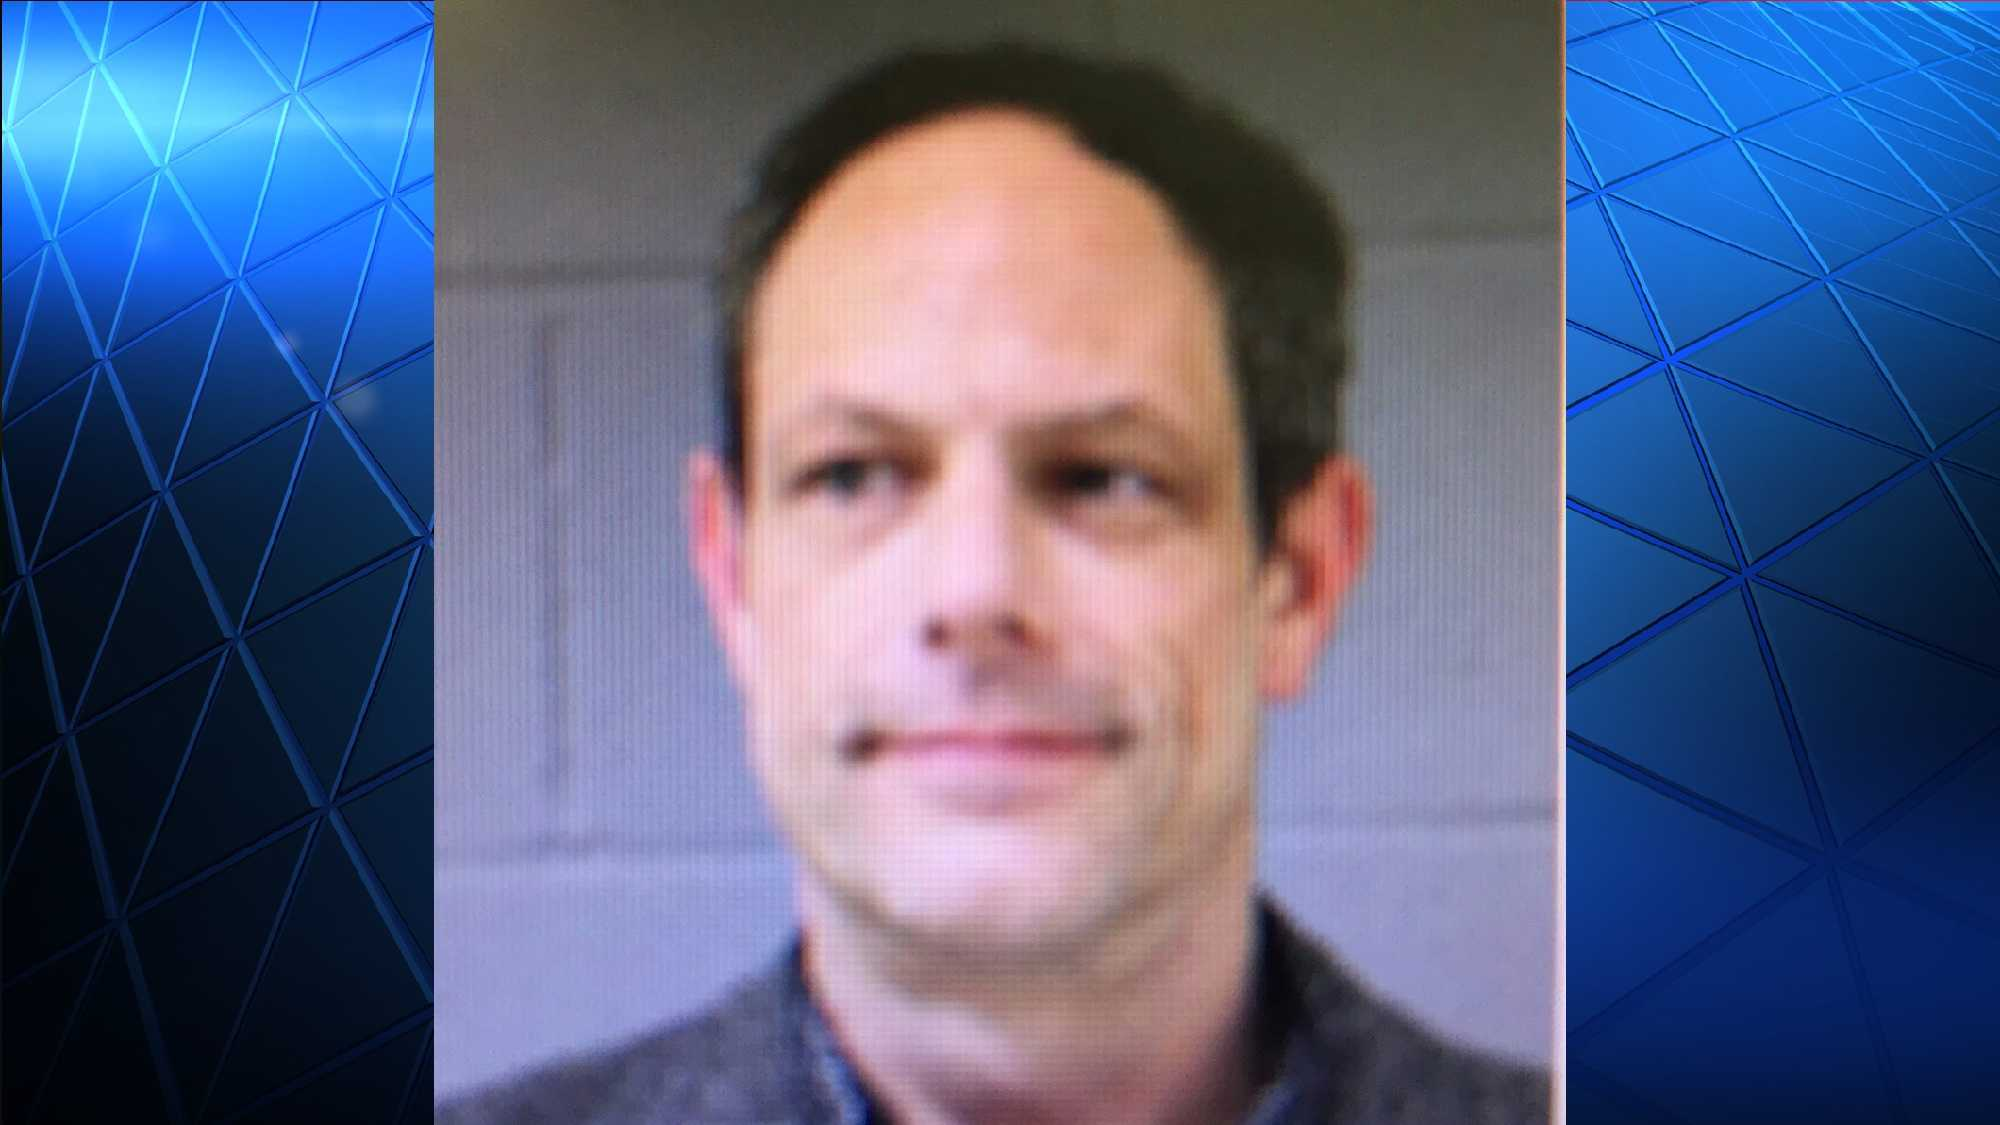 Newtown Police sayJason Adams, had entered the school carrying a concealed firearm.